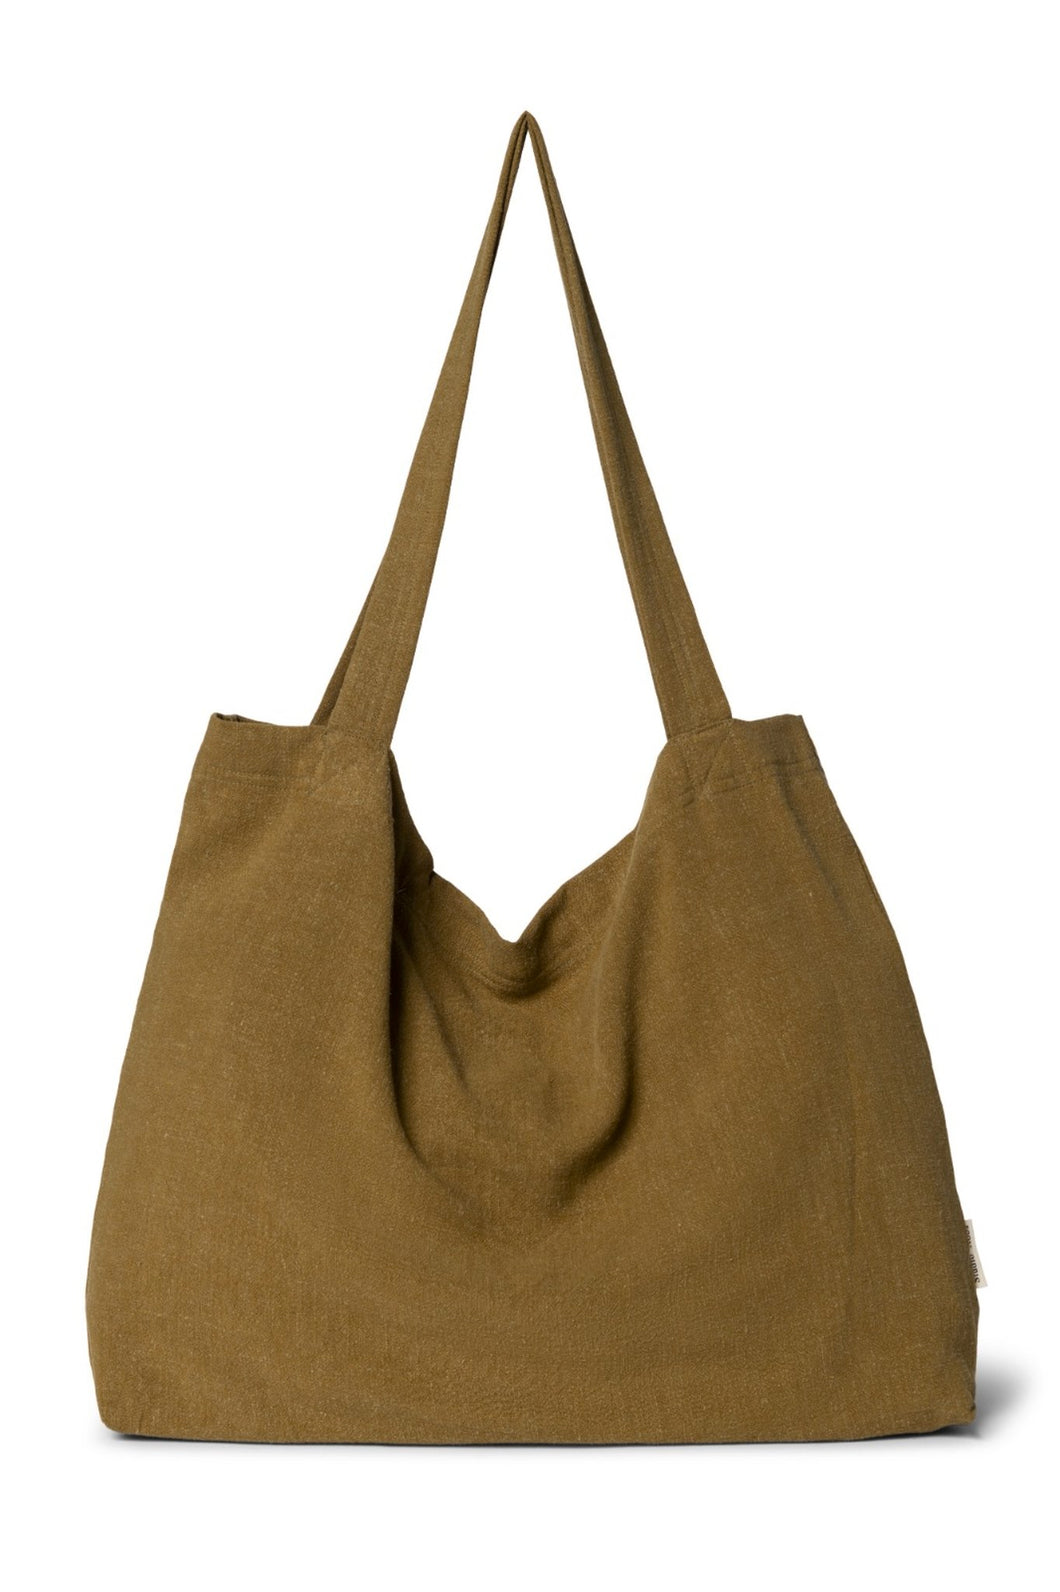 Studio Noos, mom bag - botanical